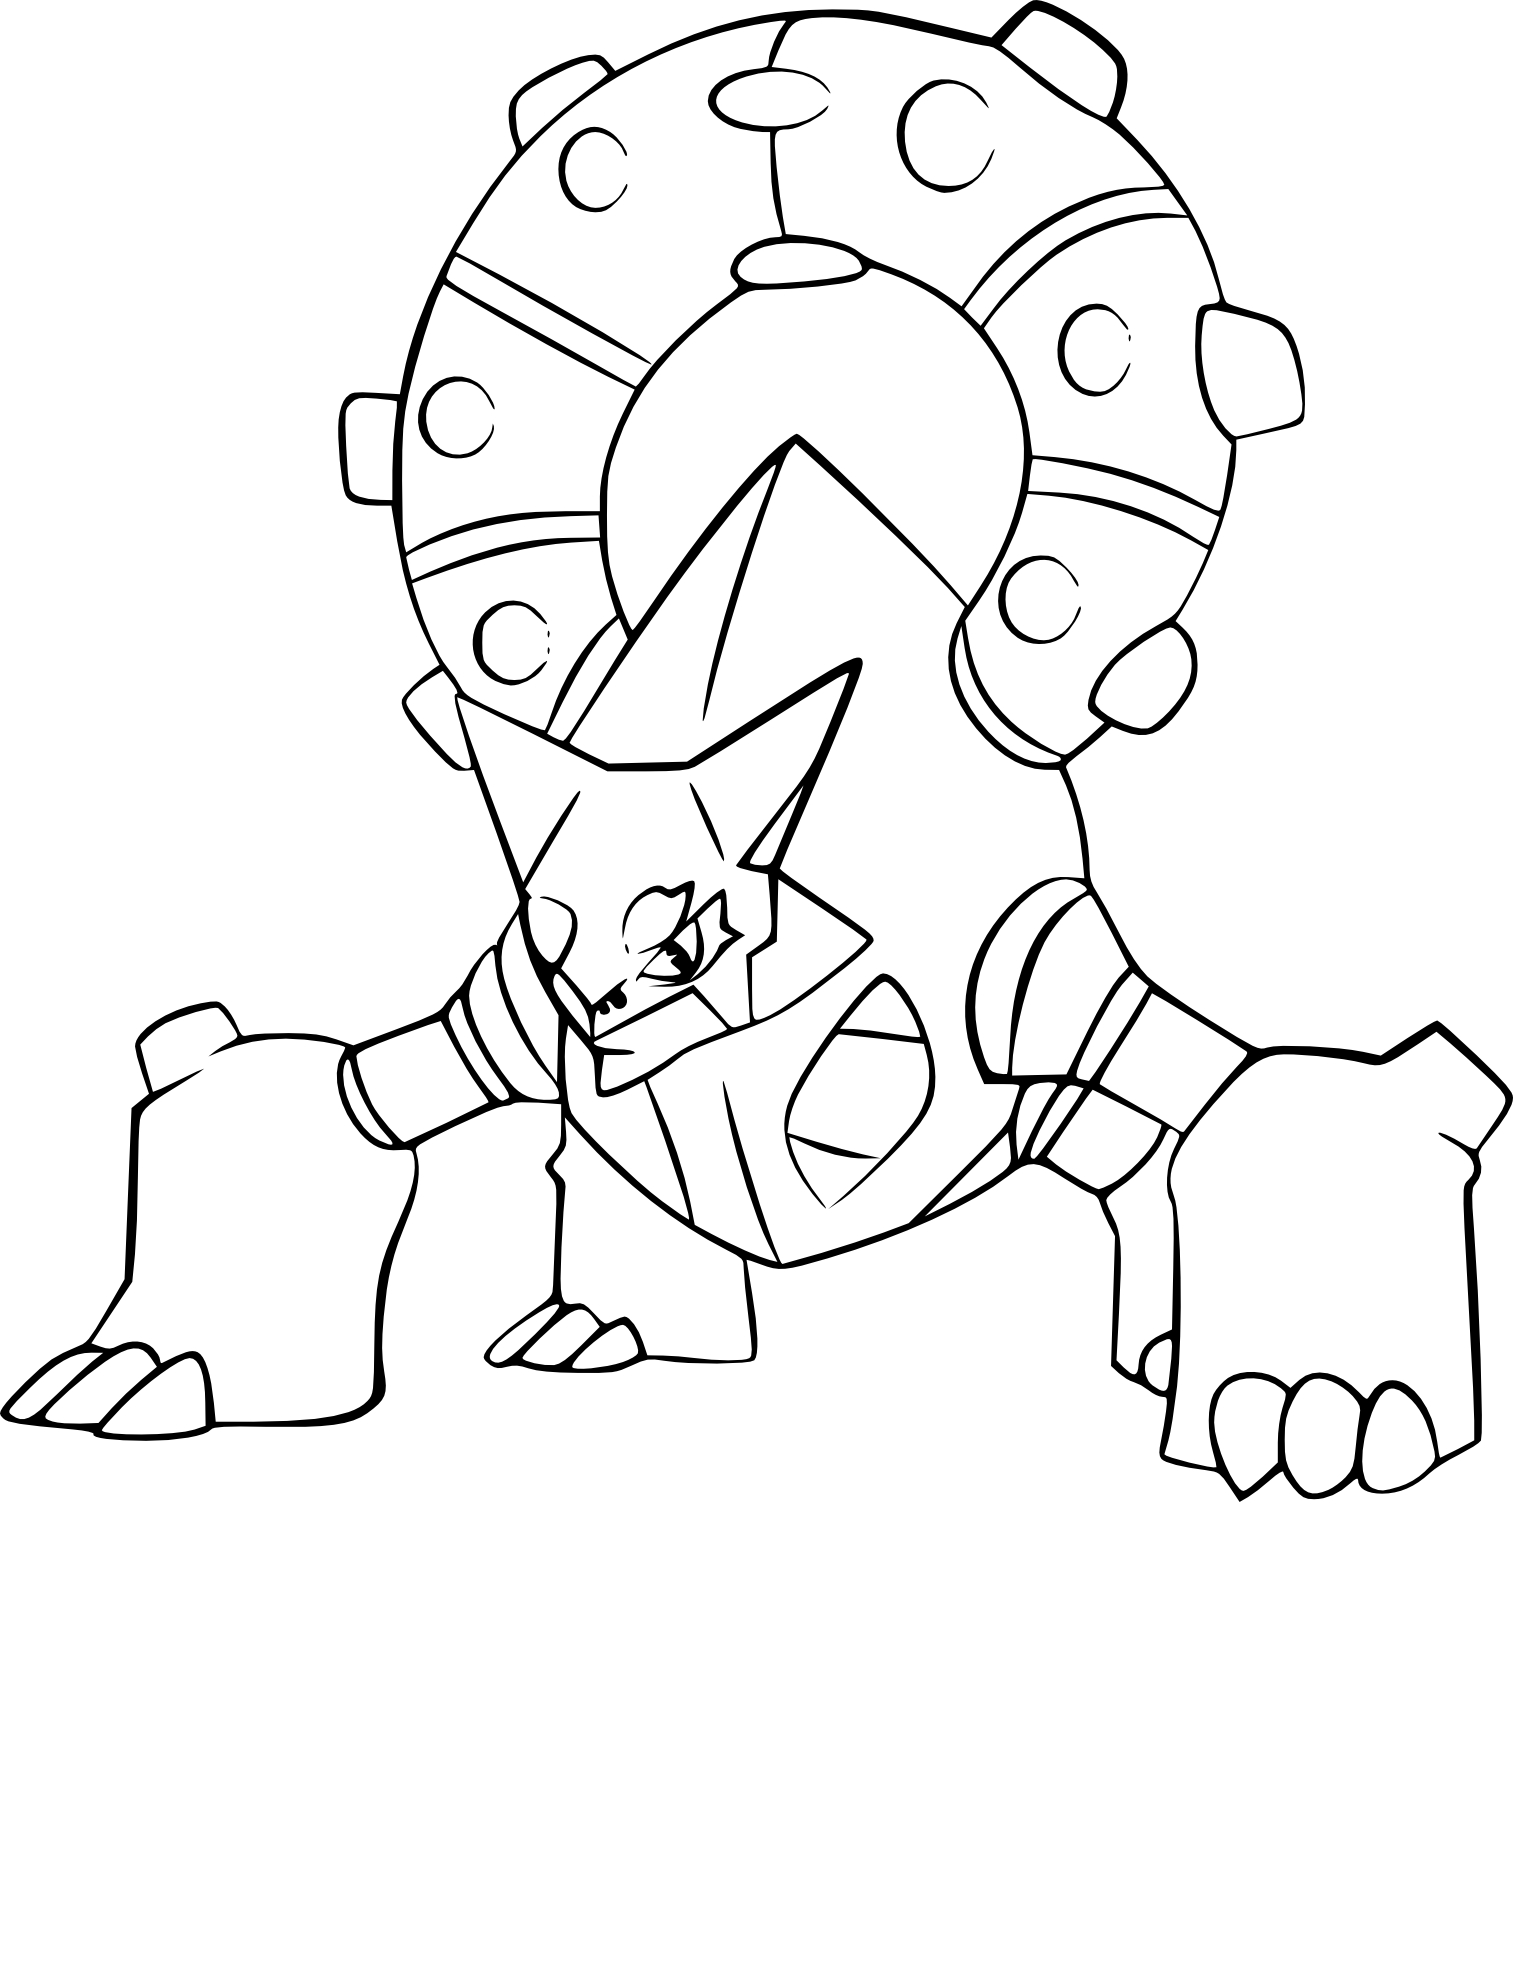 Coloriage volcanion pokemon imprimer - Dessiner pokemon ...